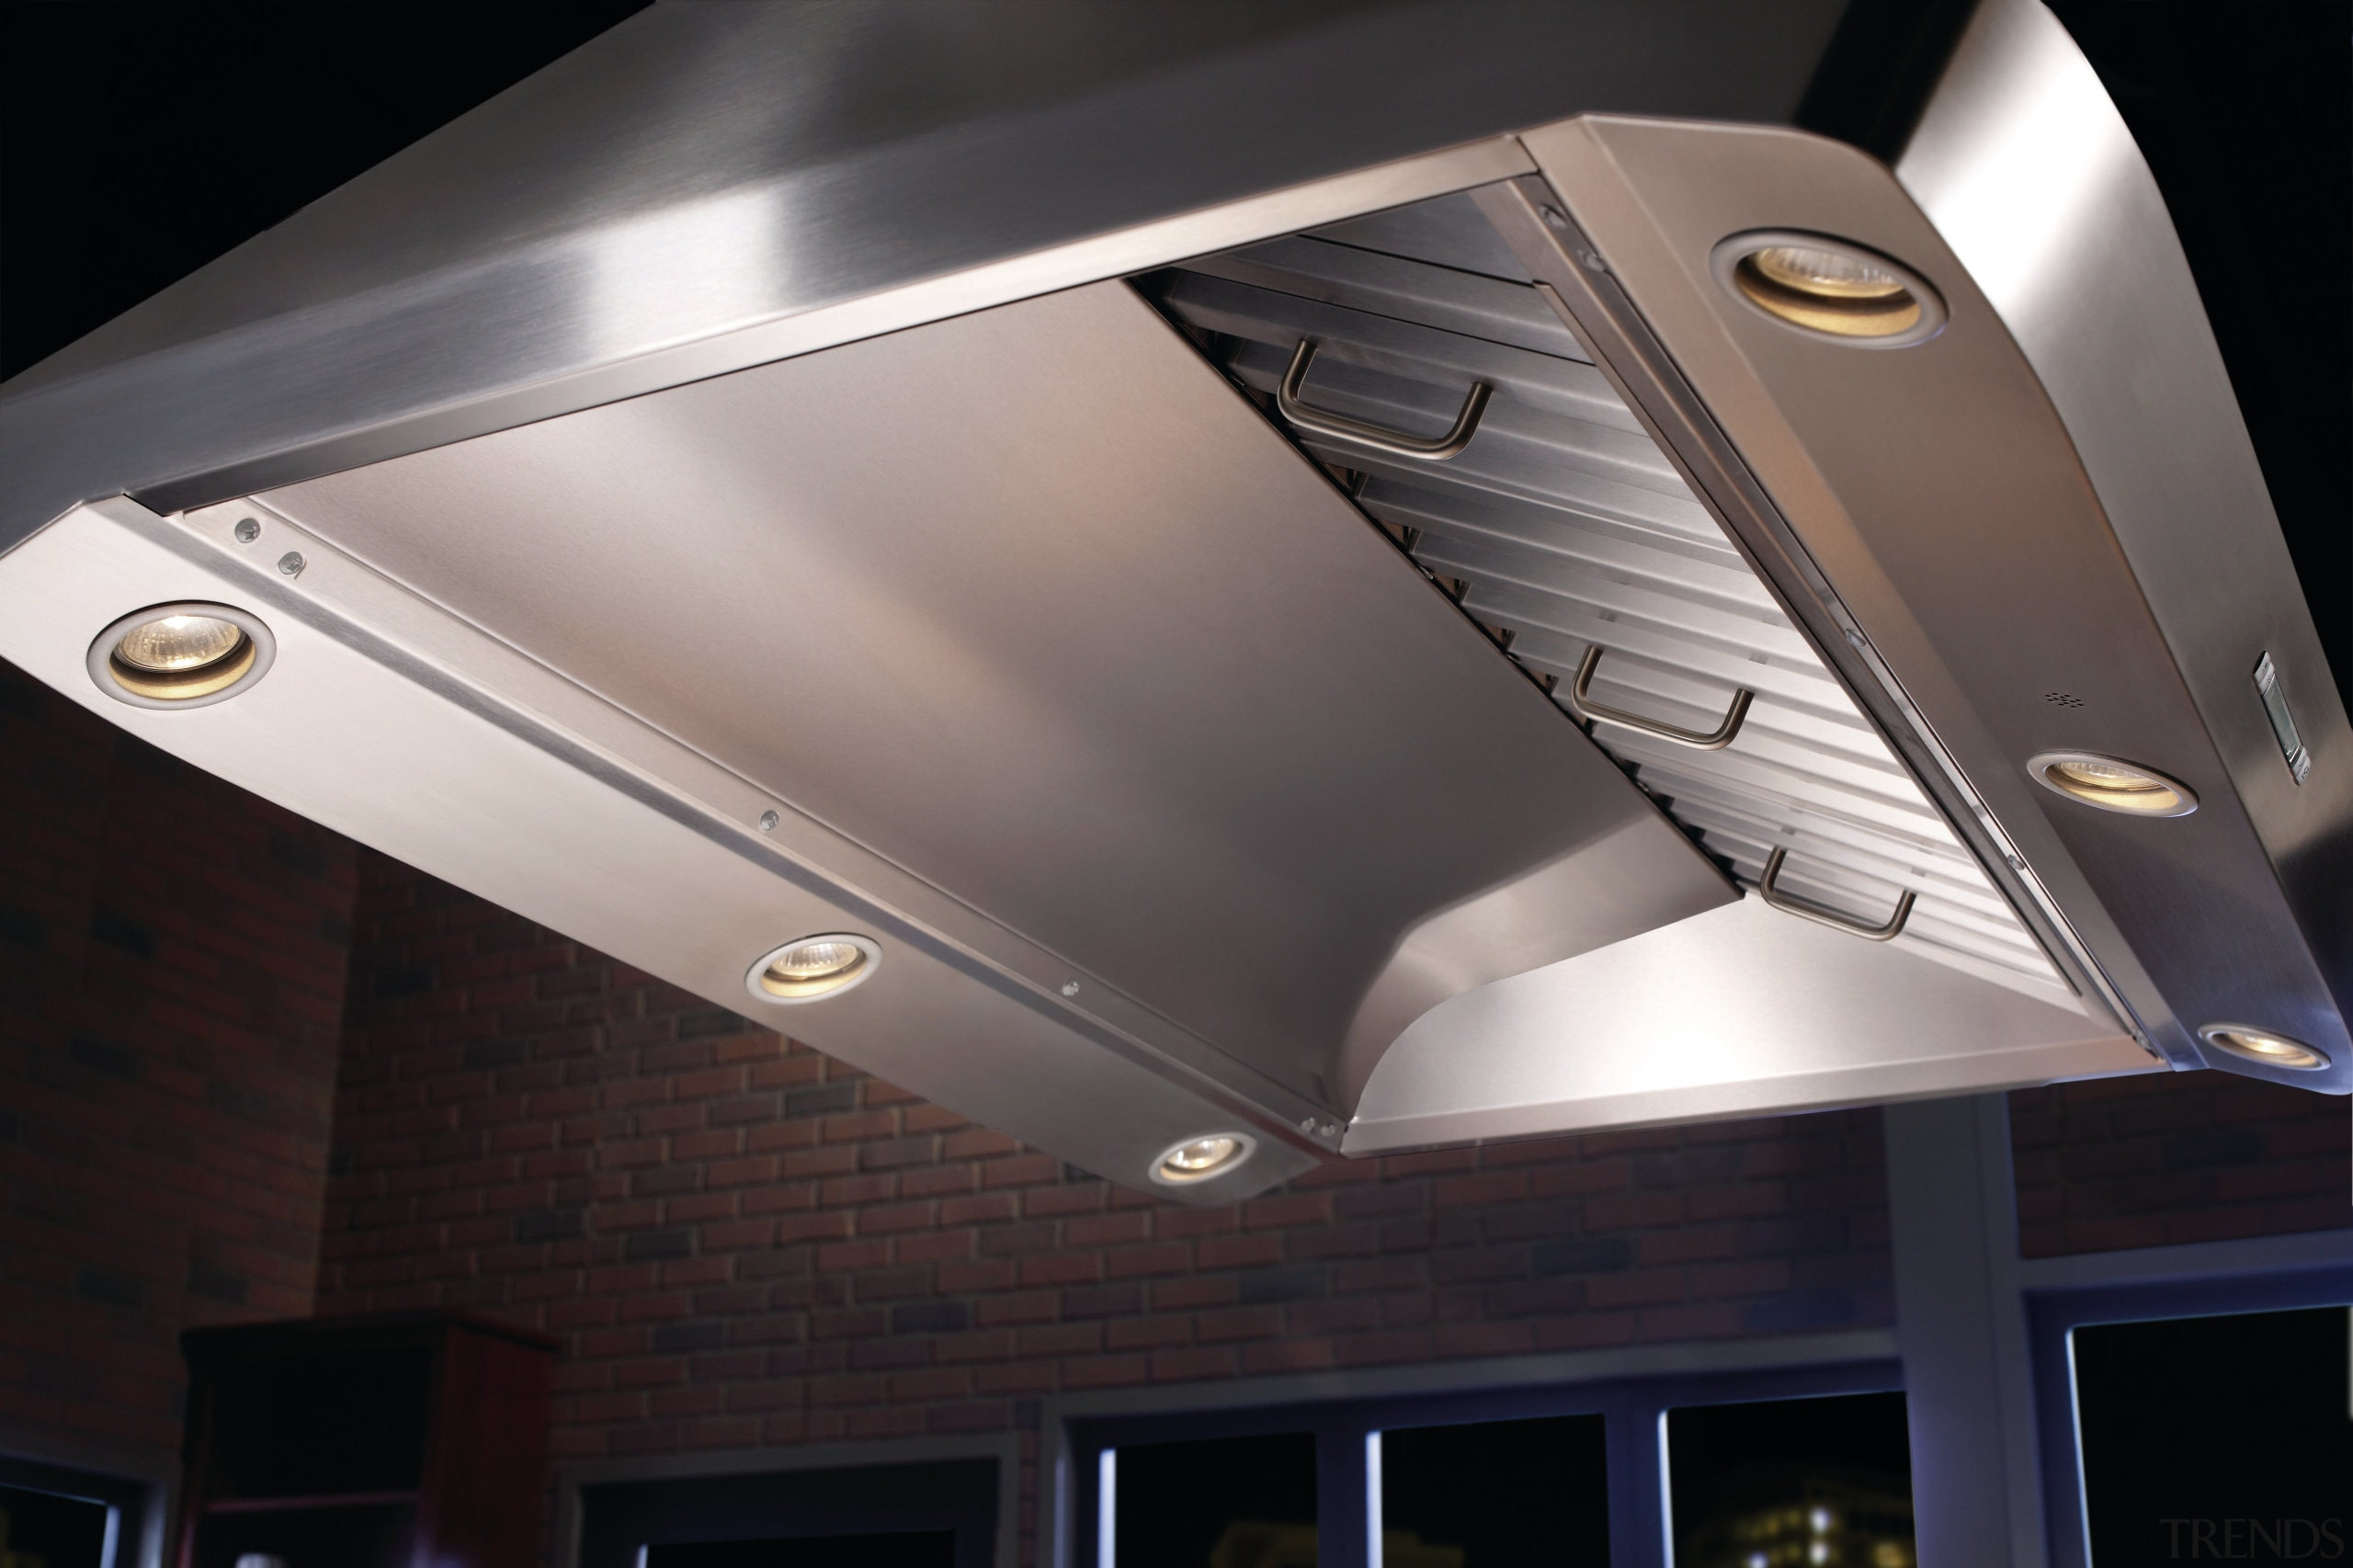 Best range hoods, including Model IP29 shown, are ceiling, daylighting, light, light fixture, lighting, product design, black, gray